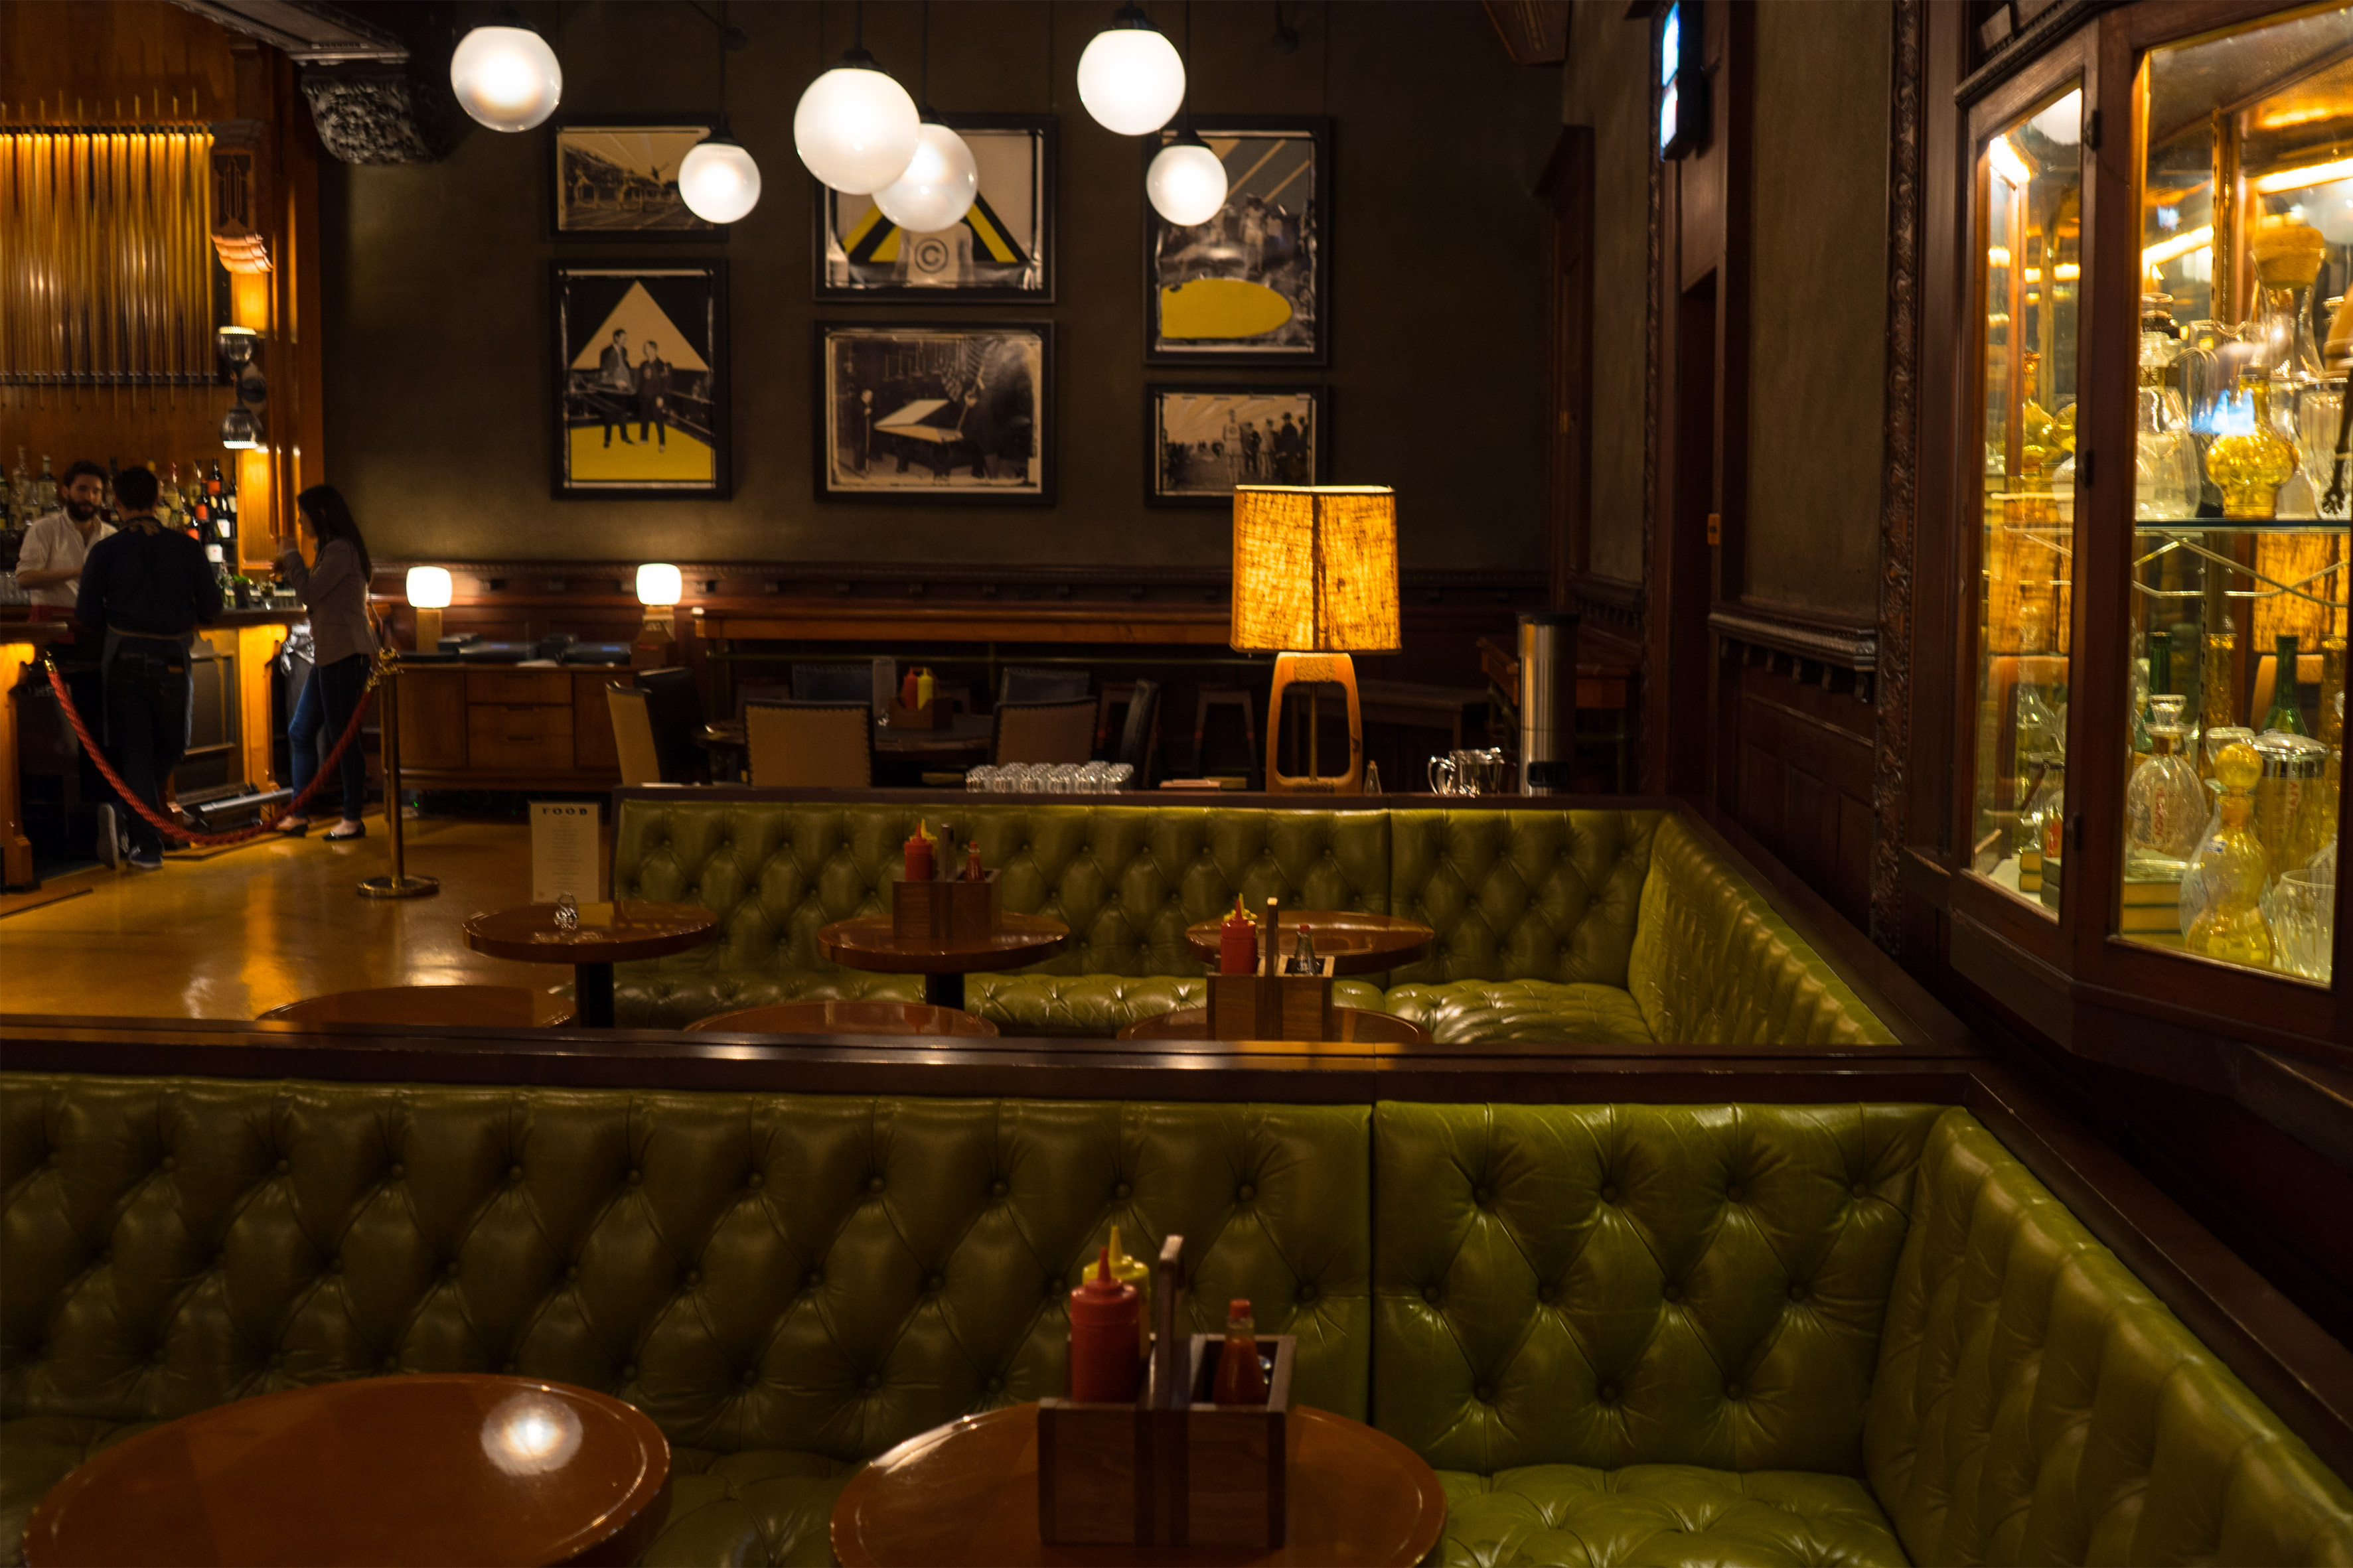 Leather seats in Chicago Athletic Association Hotel Game Room